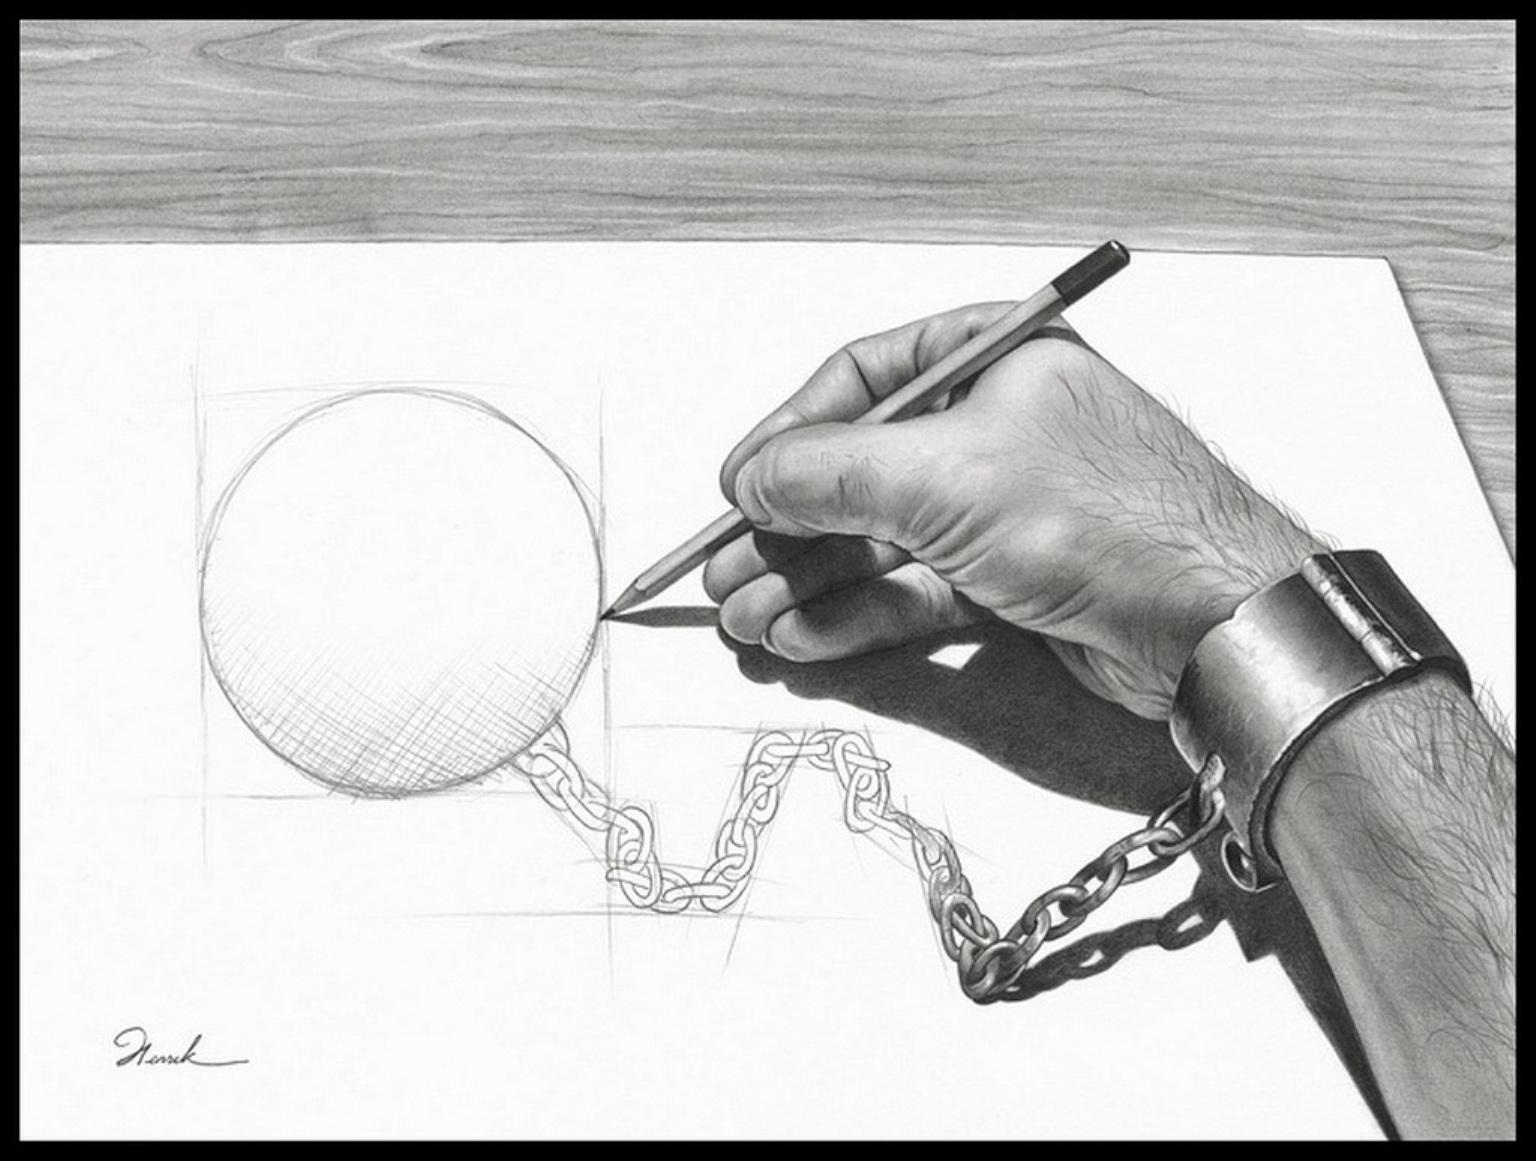 pencil sketches hd wallpapers love pencil art photo shared by 1536x1161